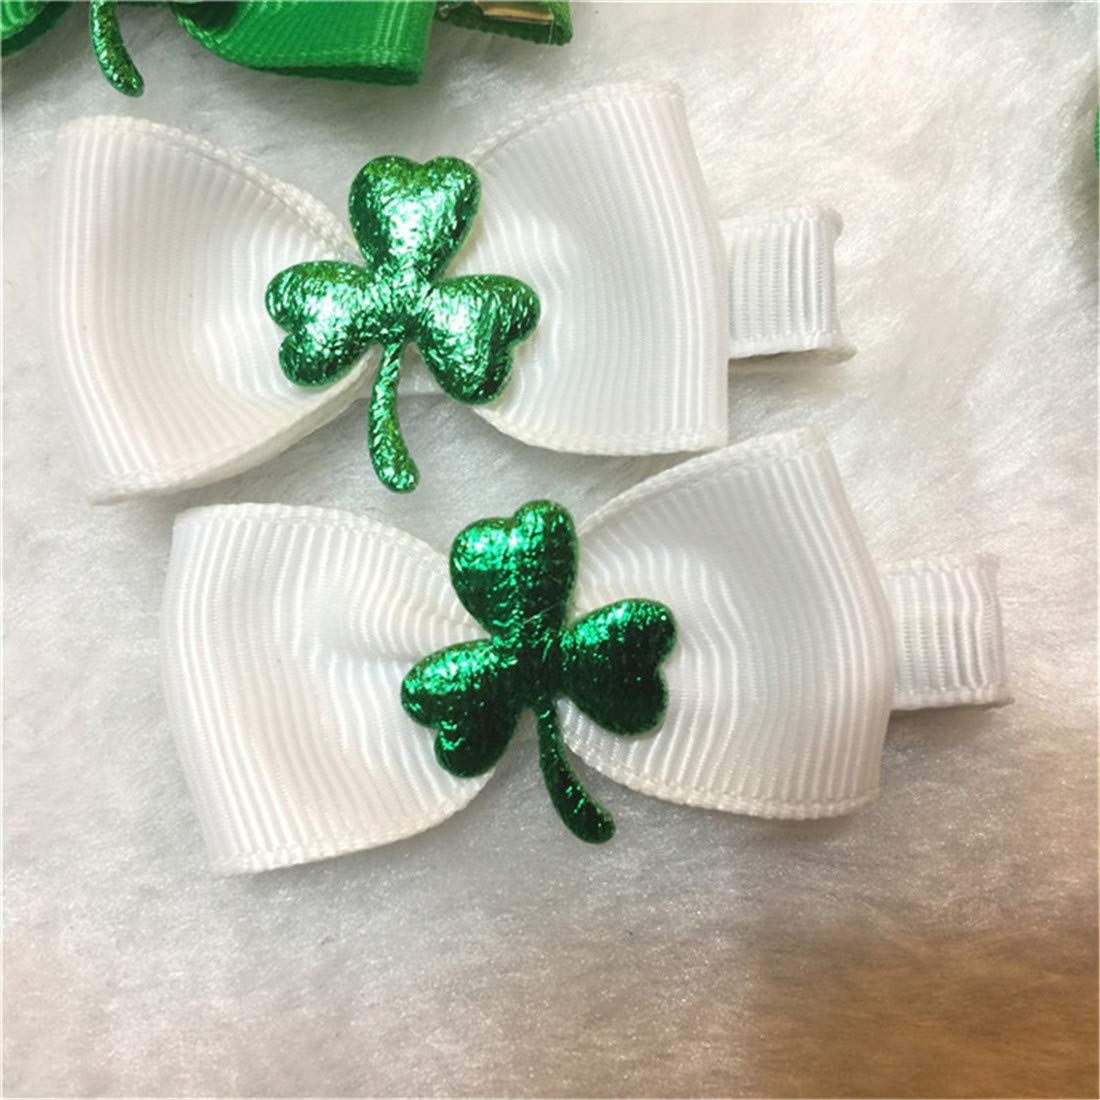 St patty day. Stacked pinwheel hair bow St patricks day ribbon hairbow with clay center Bow is attached to alligator clip with teeth